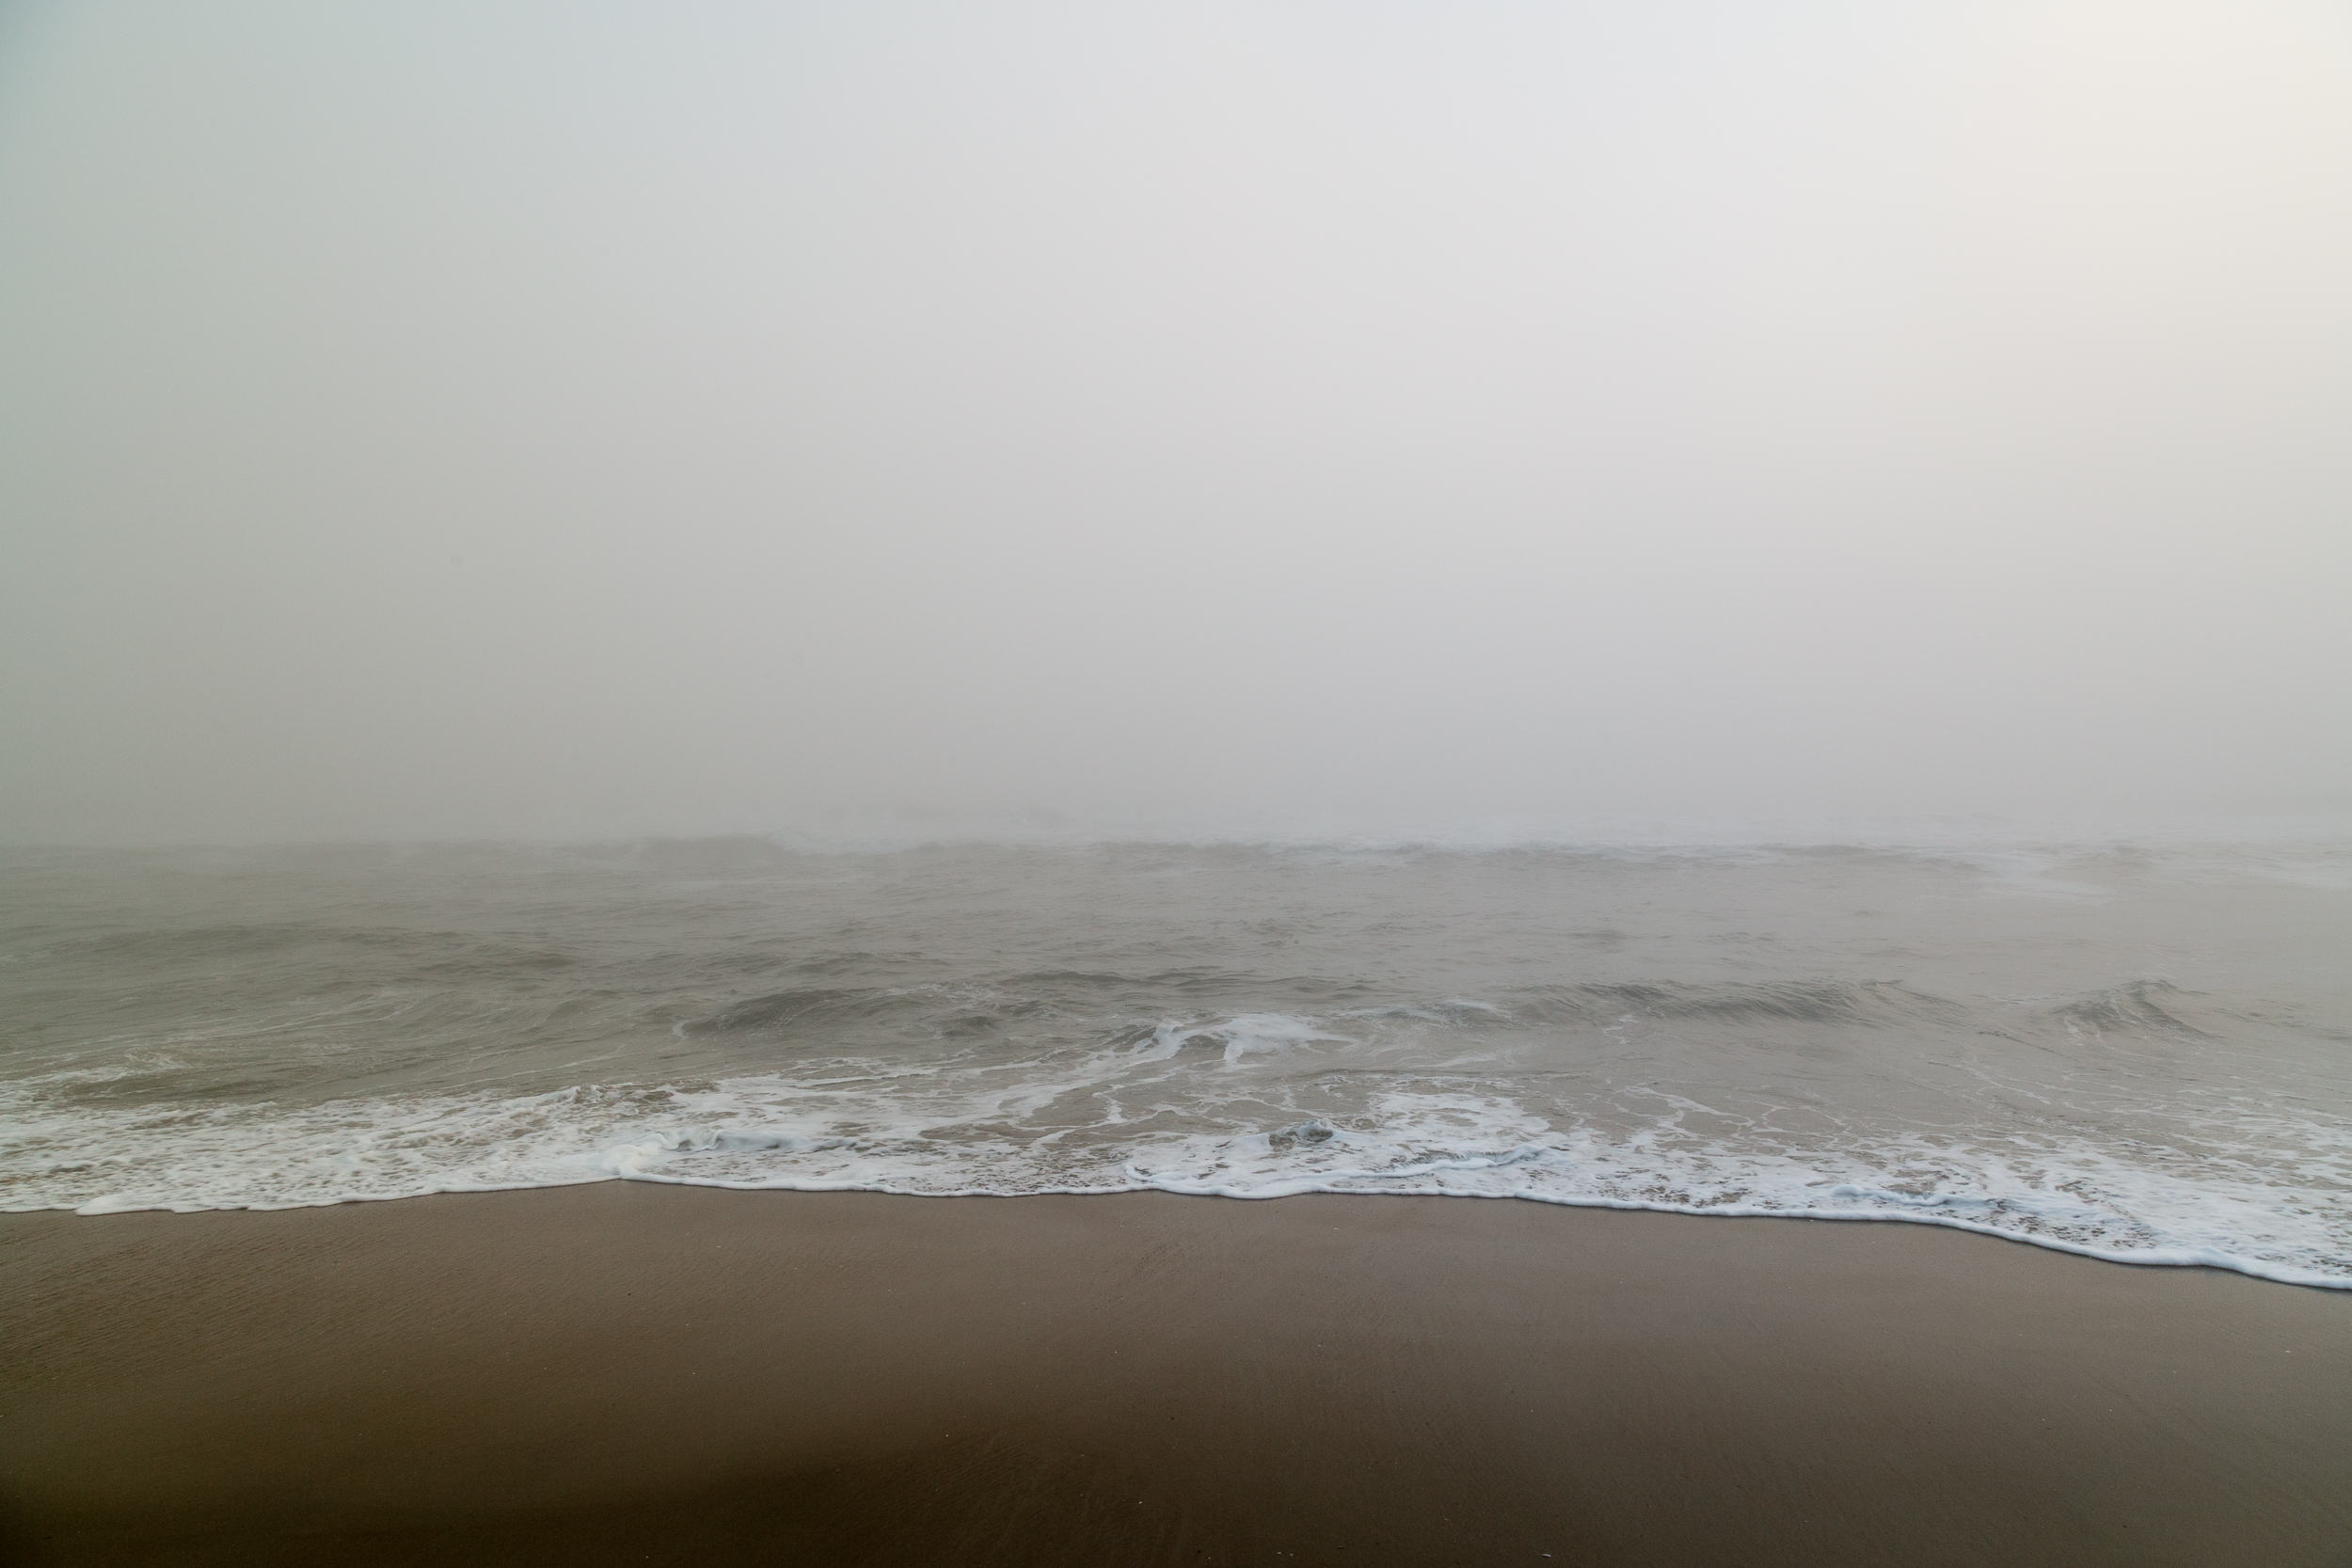 Morning fog over the Outer Banks, North Carolina.